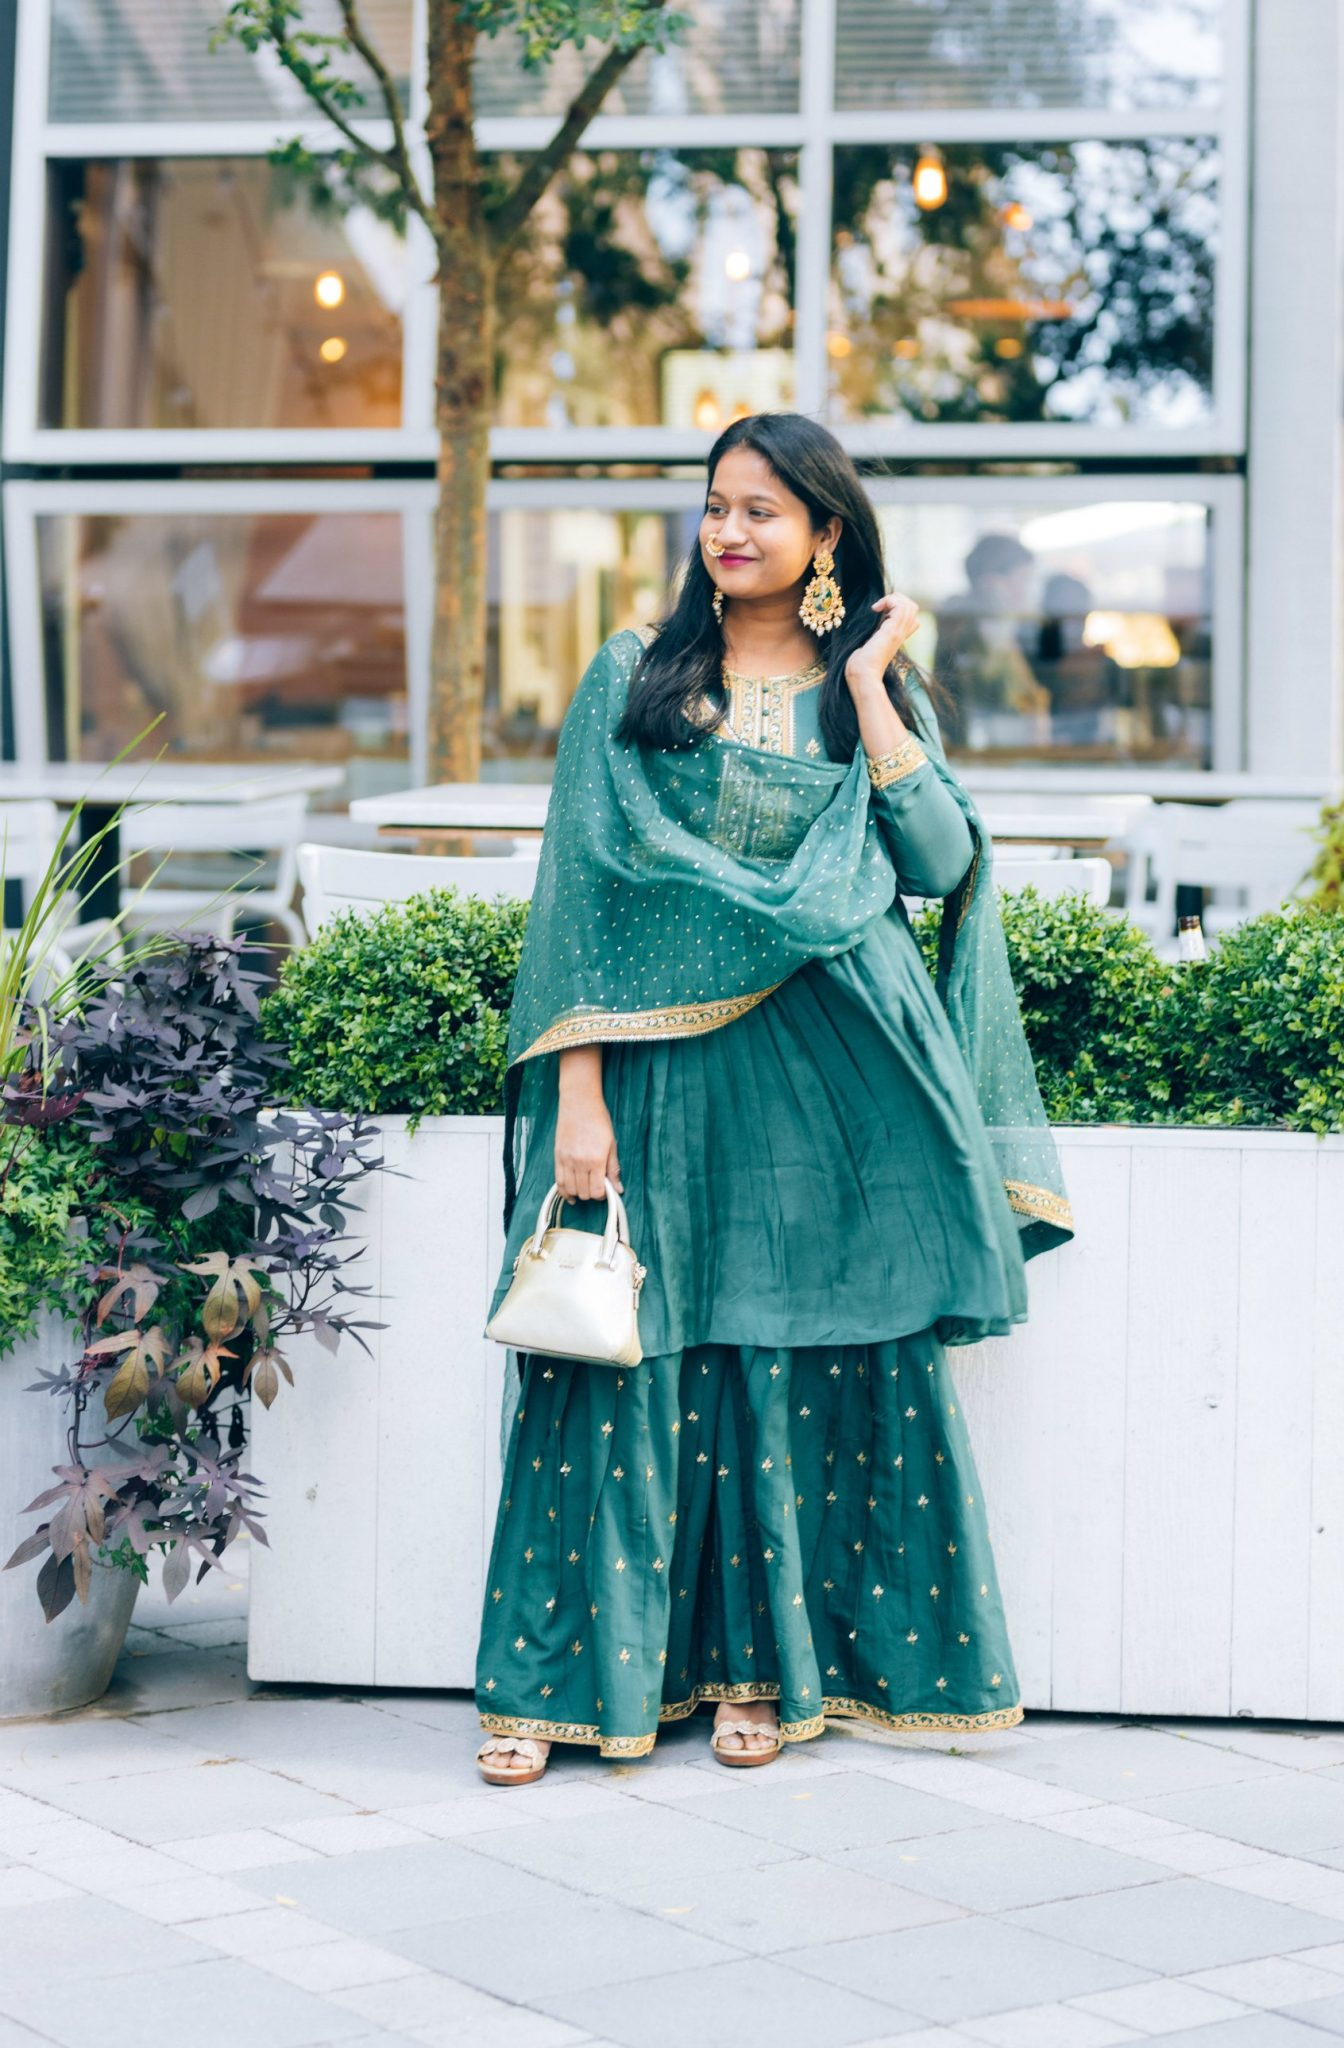 5 Cute Diwali Outfits to Wear for your Diwali Party, Diwali look book featured by top US modest fashion blog, Dreaming Loud: green sharara suit